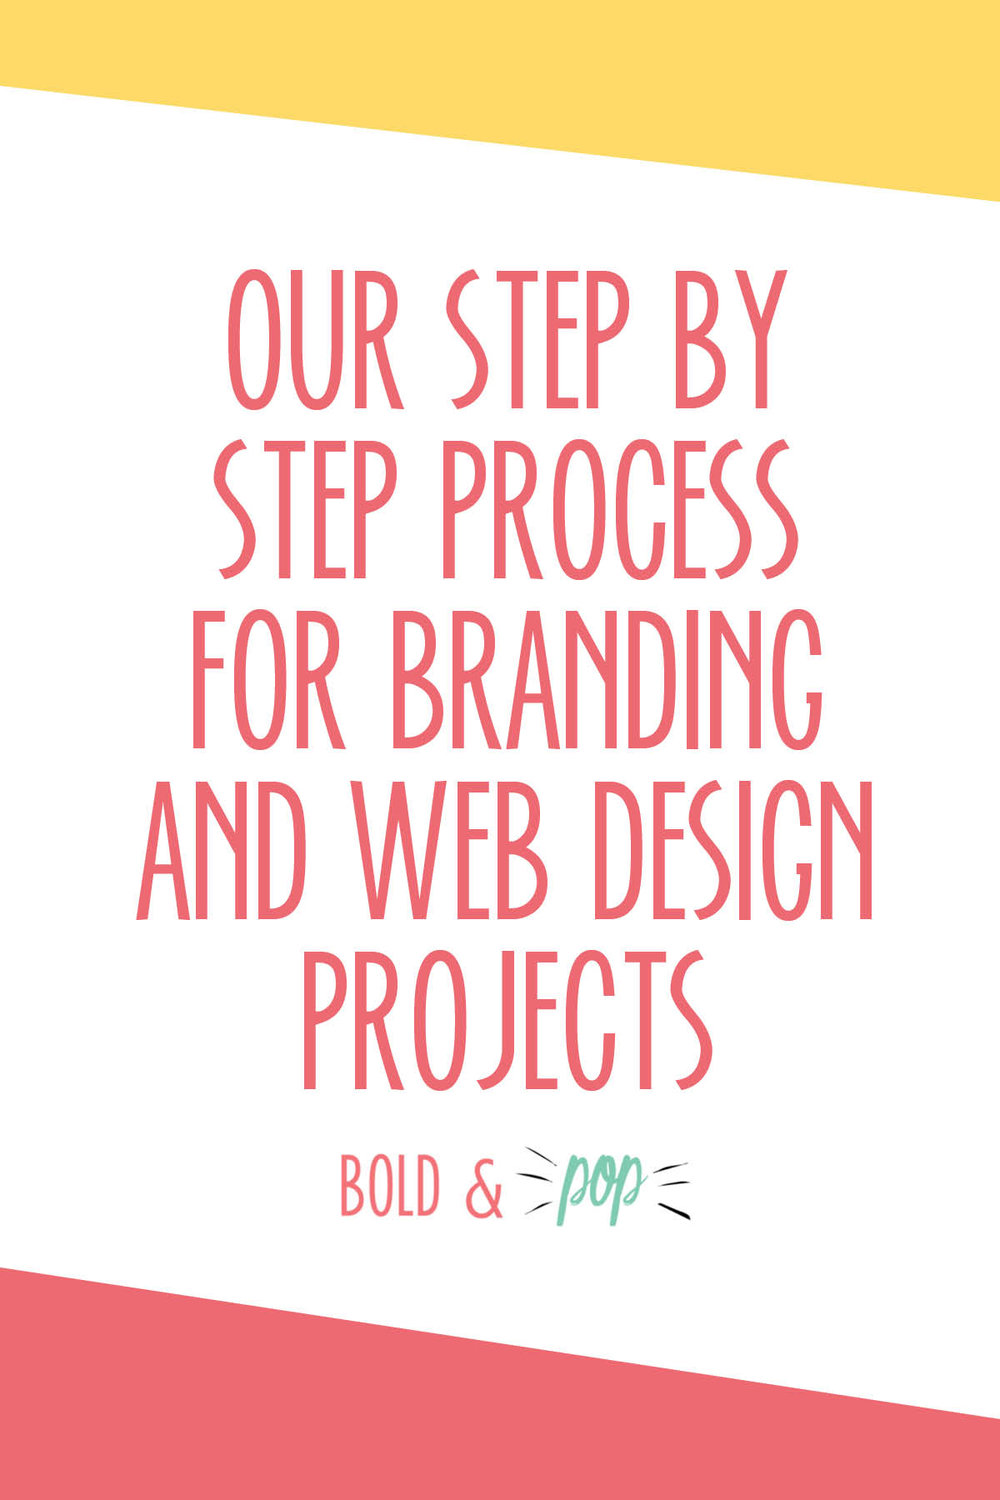 Bold & Pop Branding and Squarespace Website Design Collective : Our Step by Step Process for Branding and Web Design Projects